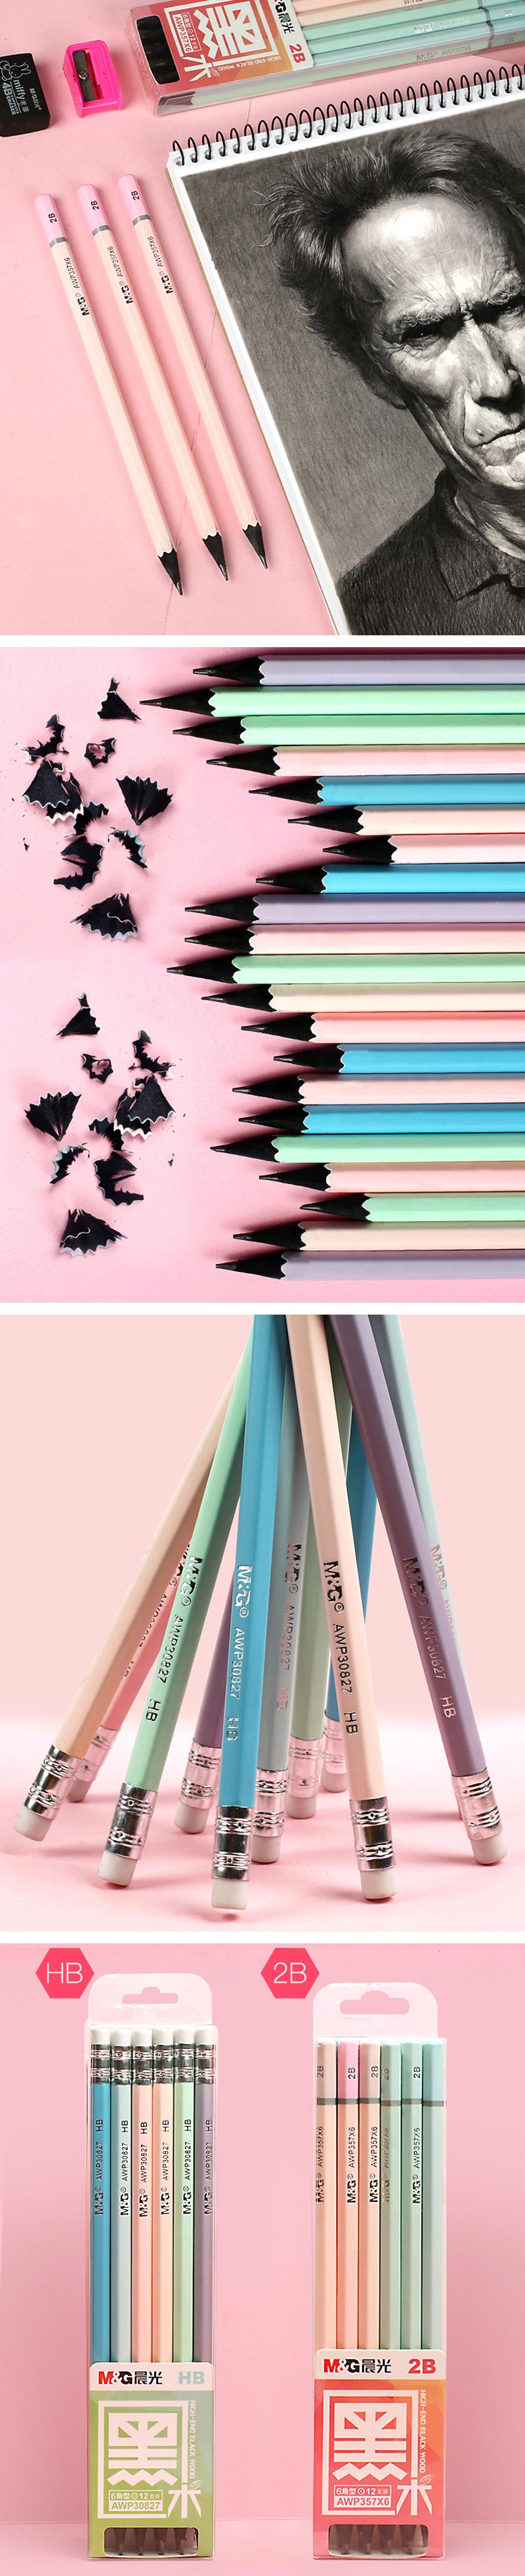 Pastel Black Wood HB 2B Pencil 12 Pcs Set - Detail